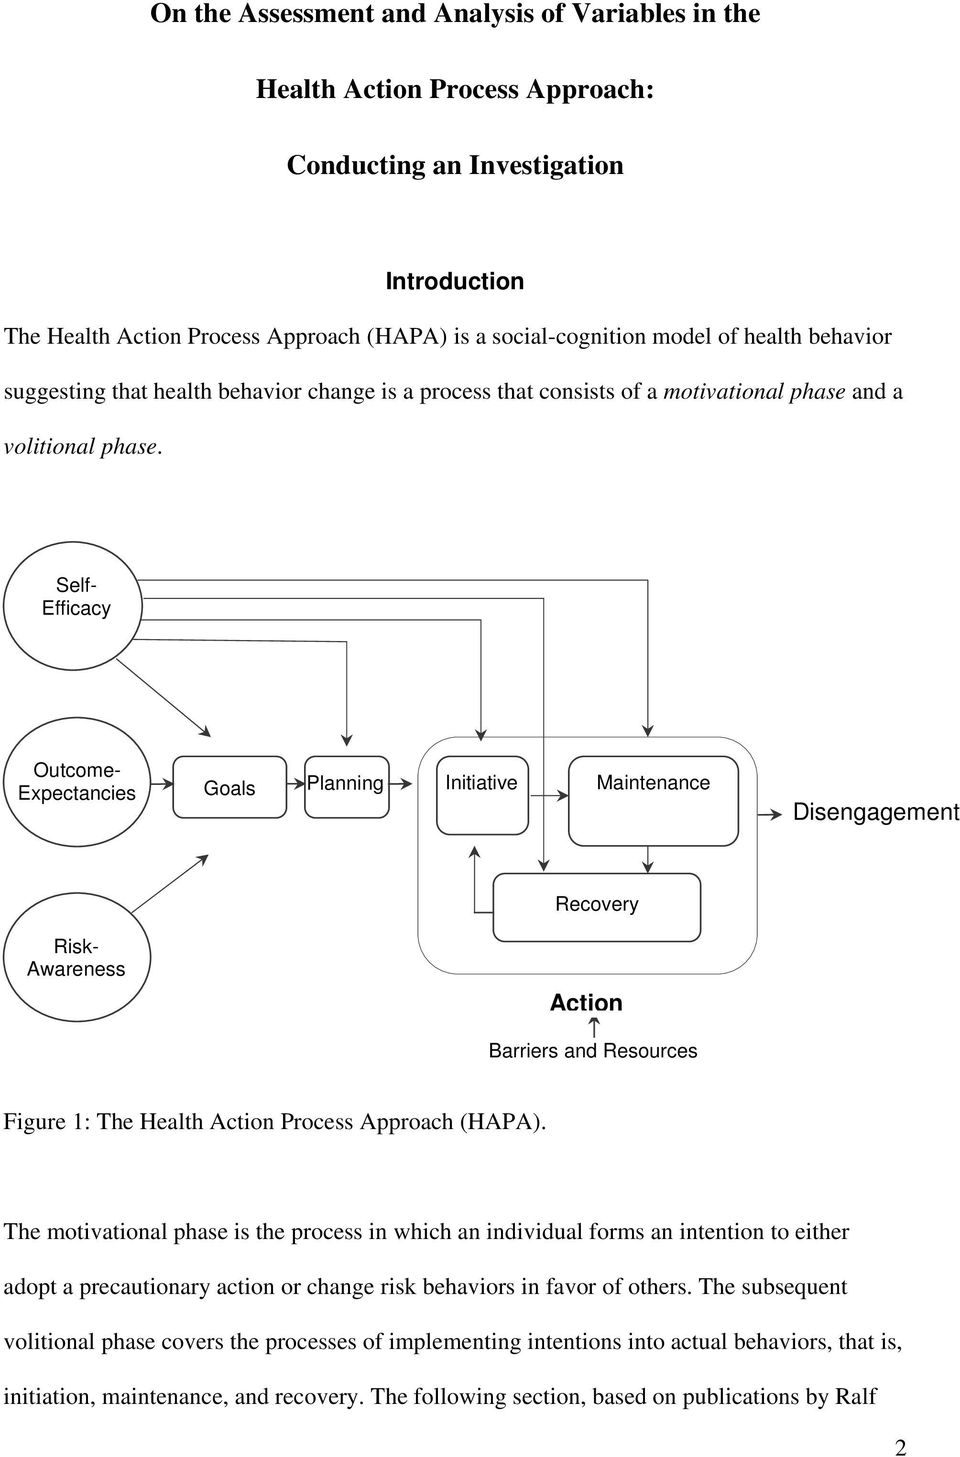 Self- Efficacy Outcome- Expectancies Goals Planning Initiative Maintenance Disengagement Risk- Awareness Recovery Action Barriers and Resources Figure 1: The Health Action Process Approach (HAPA).